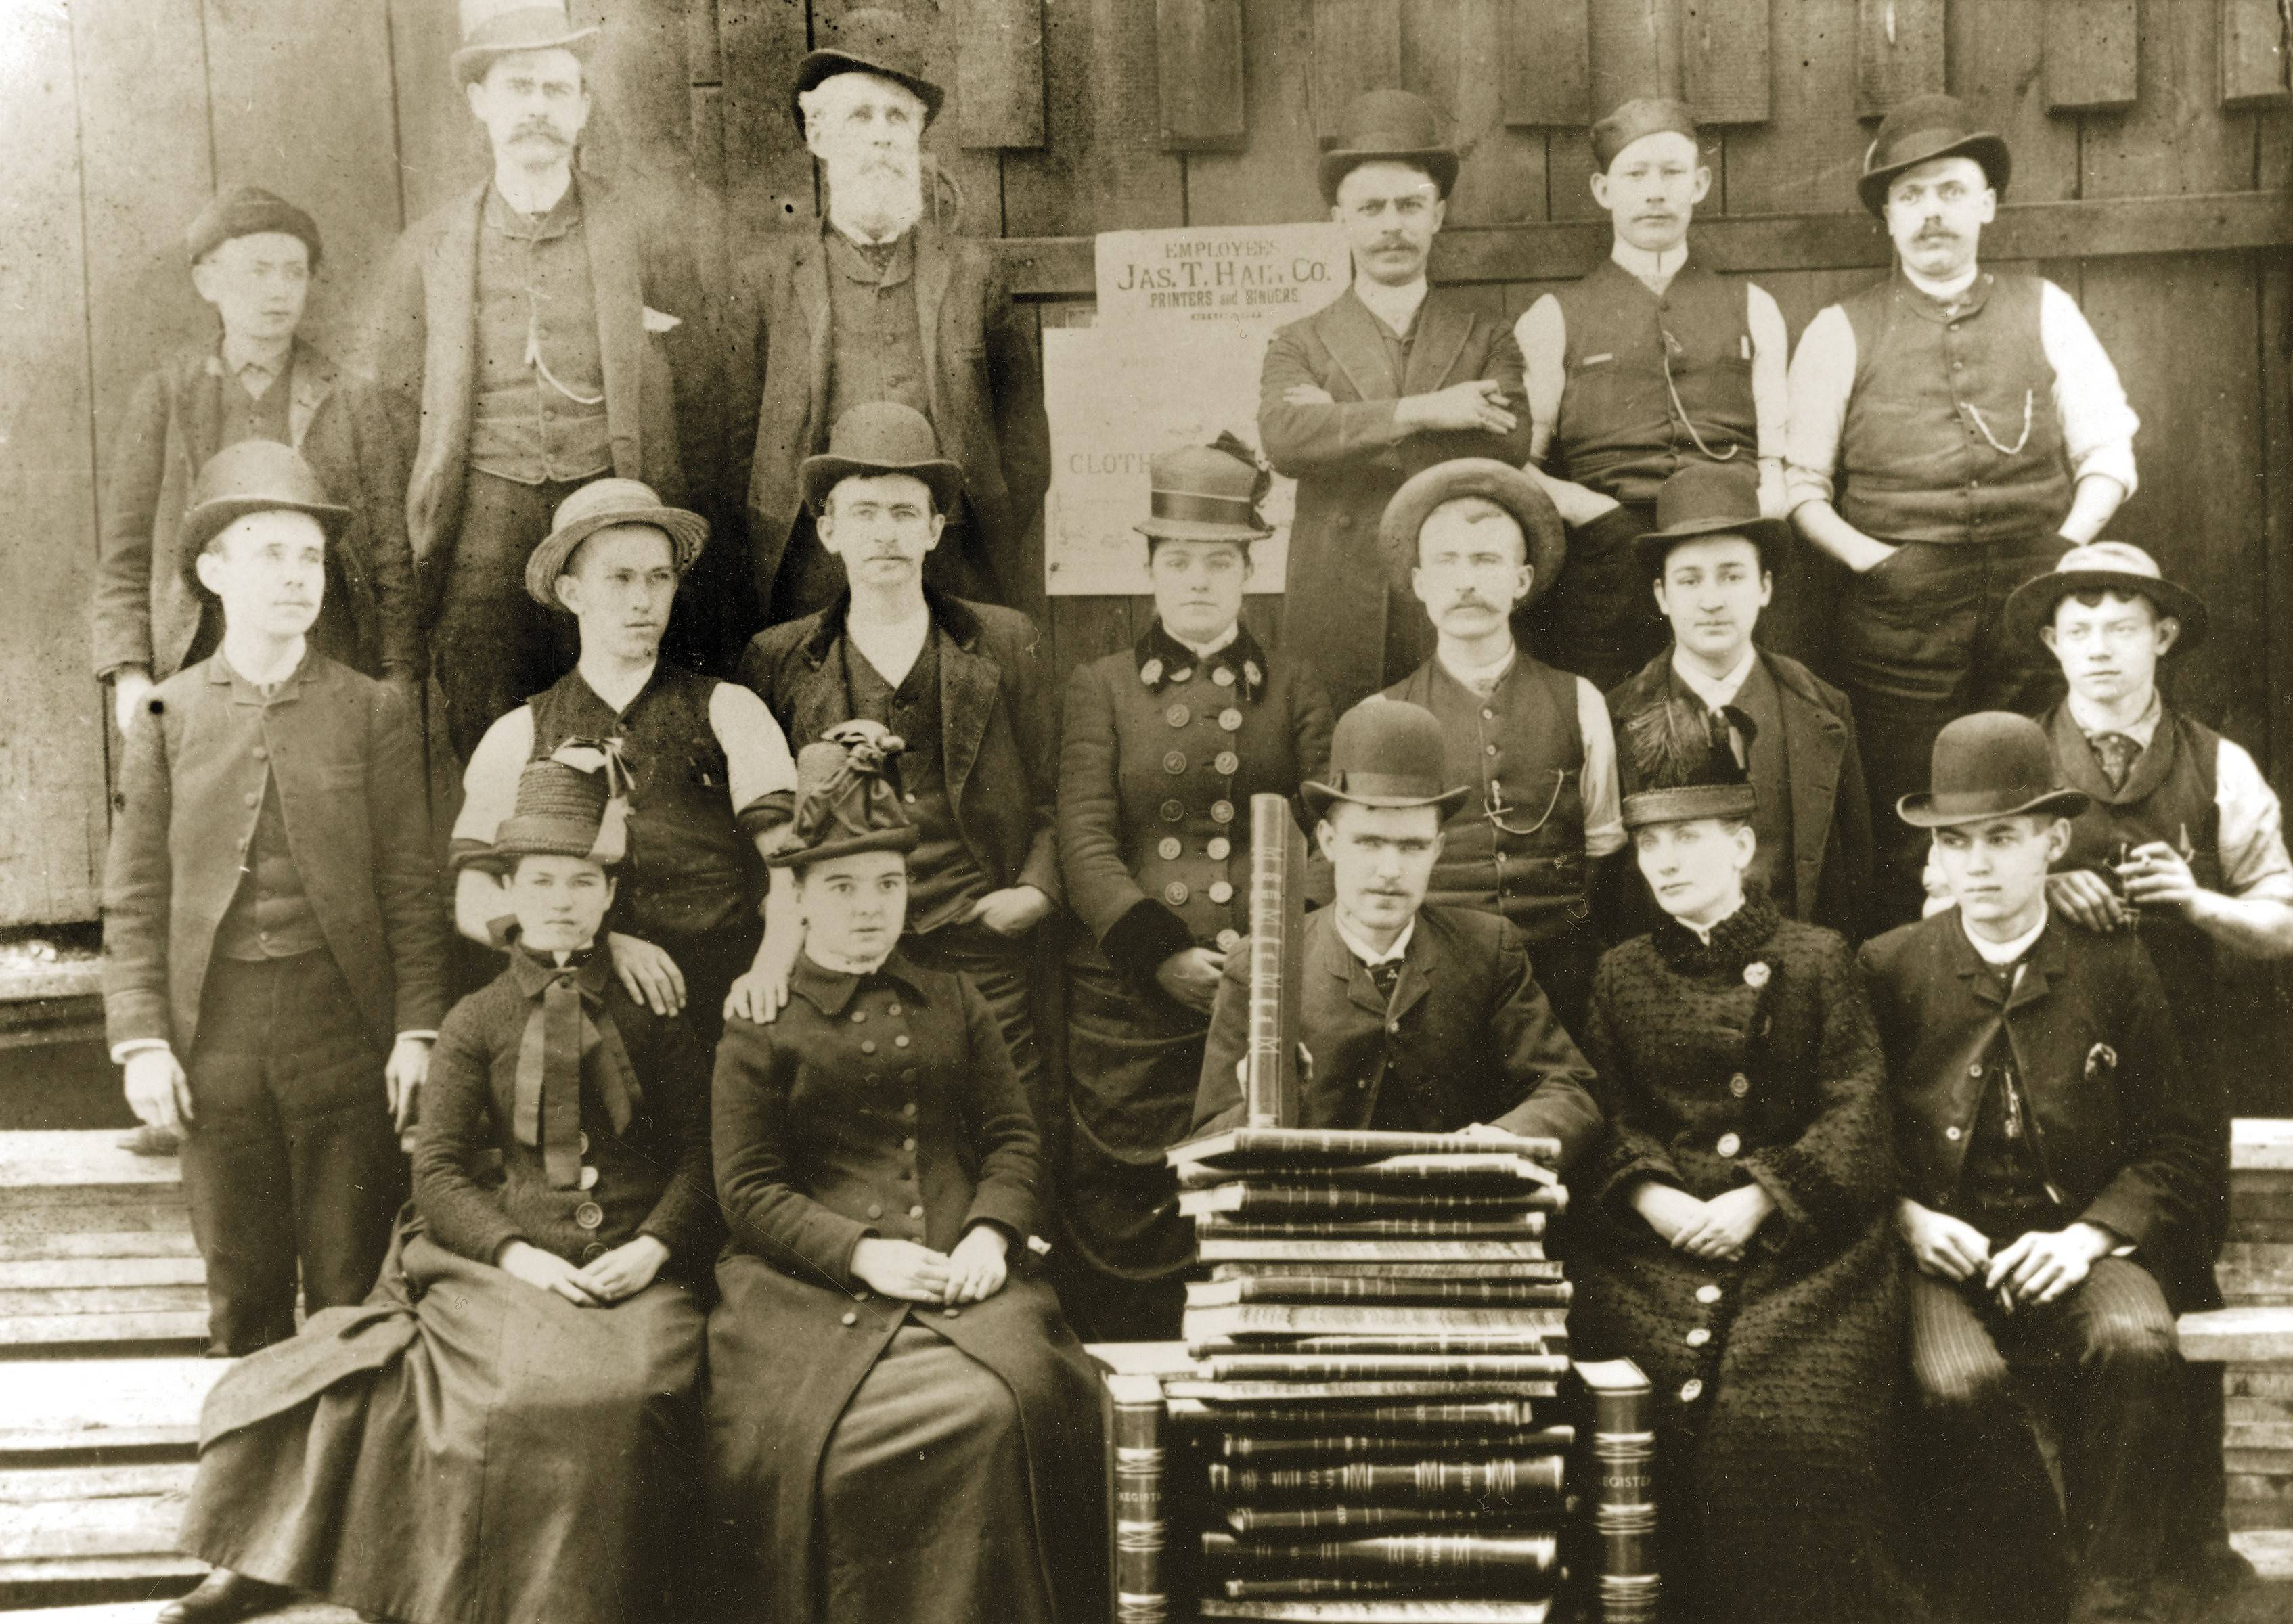 The original American Hotel staff, circa 1890, with owner, Thomas Leahy in the bowler hat in the center of the front row.